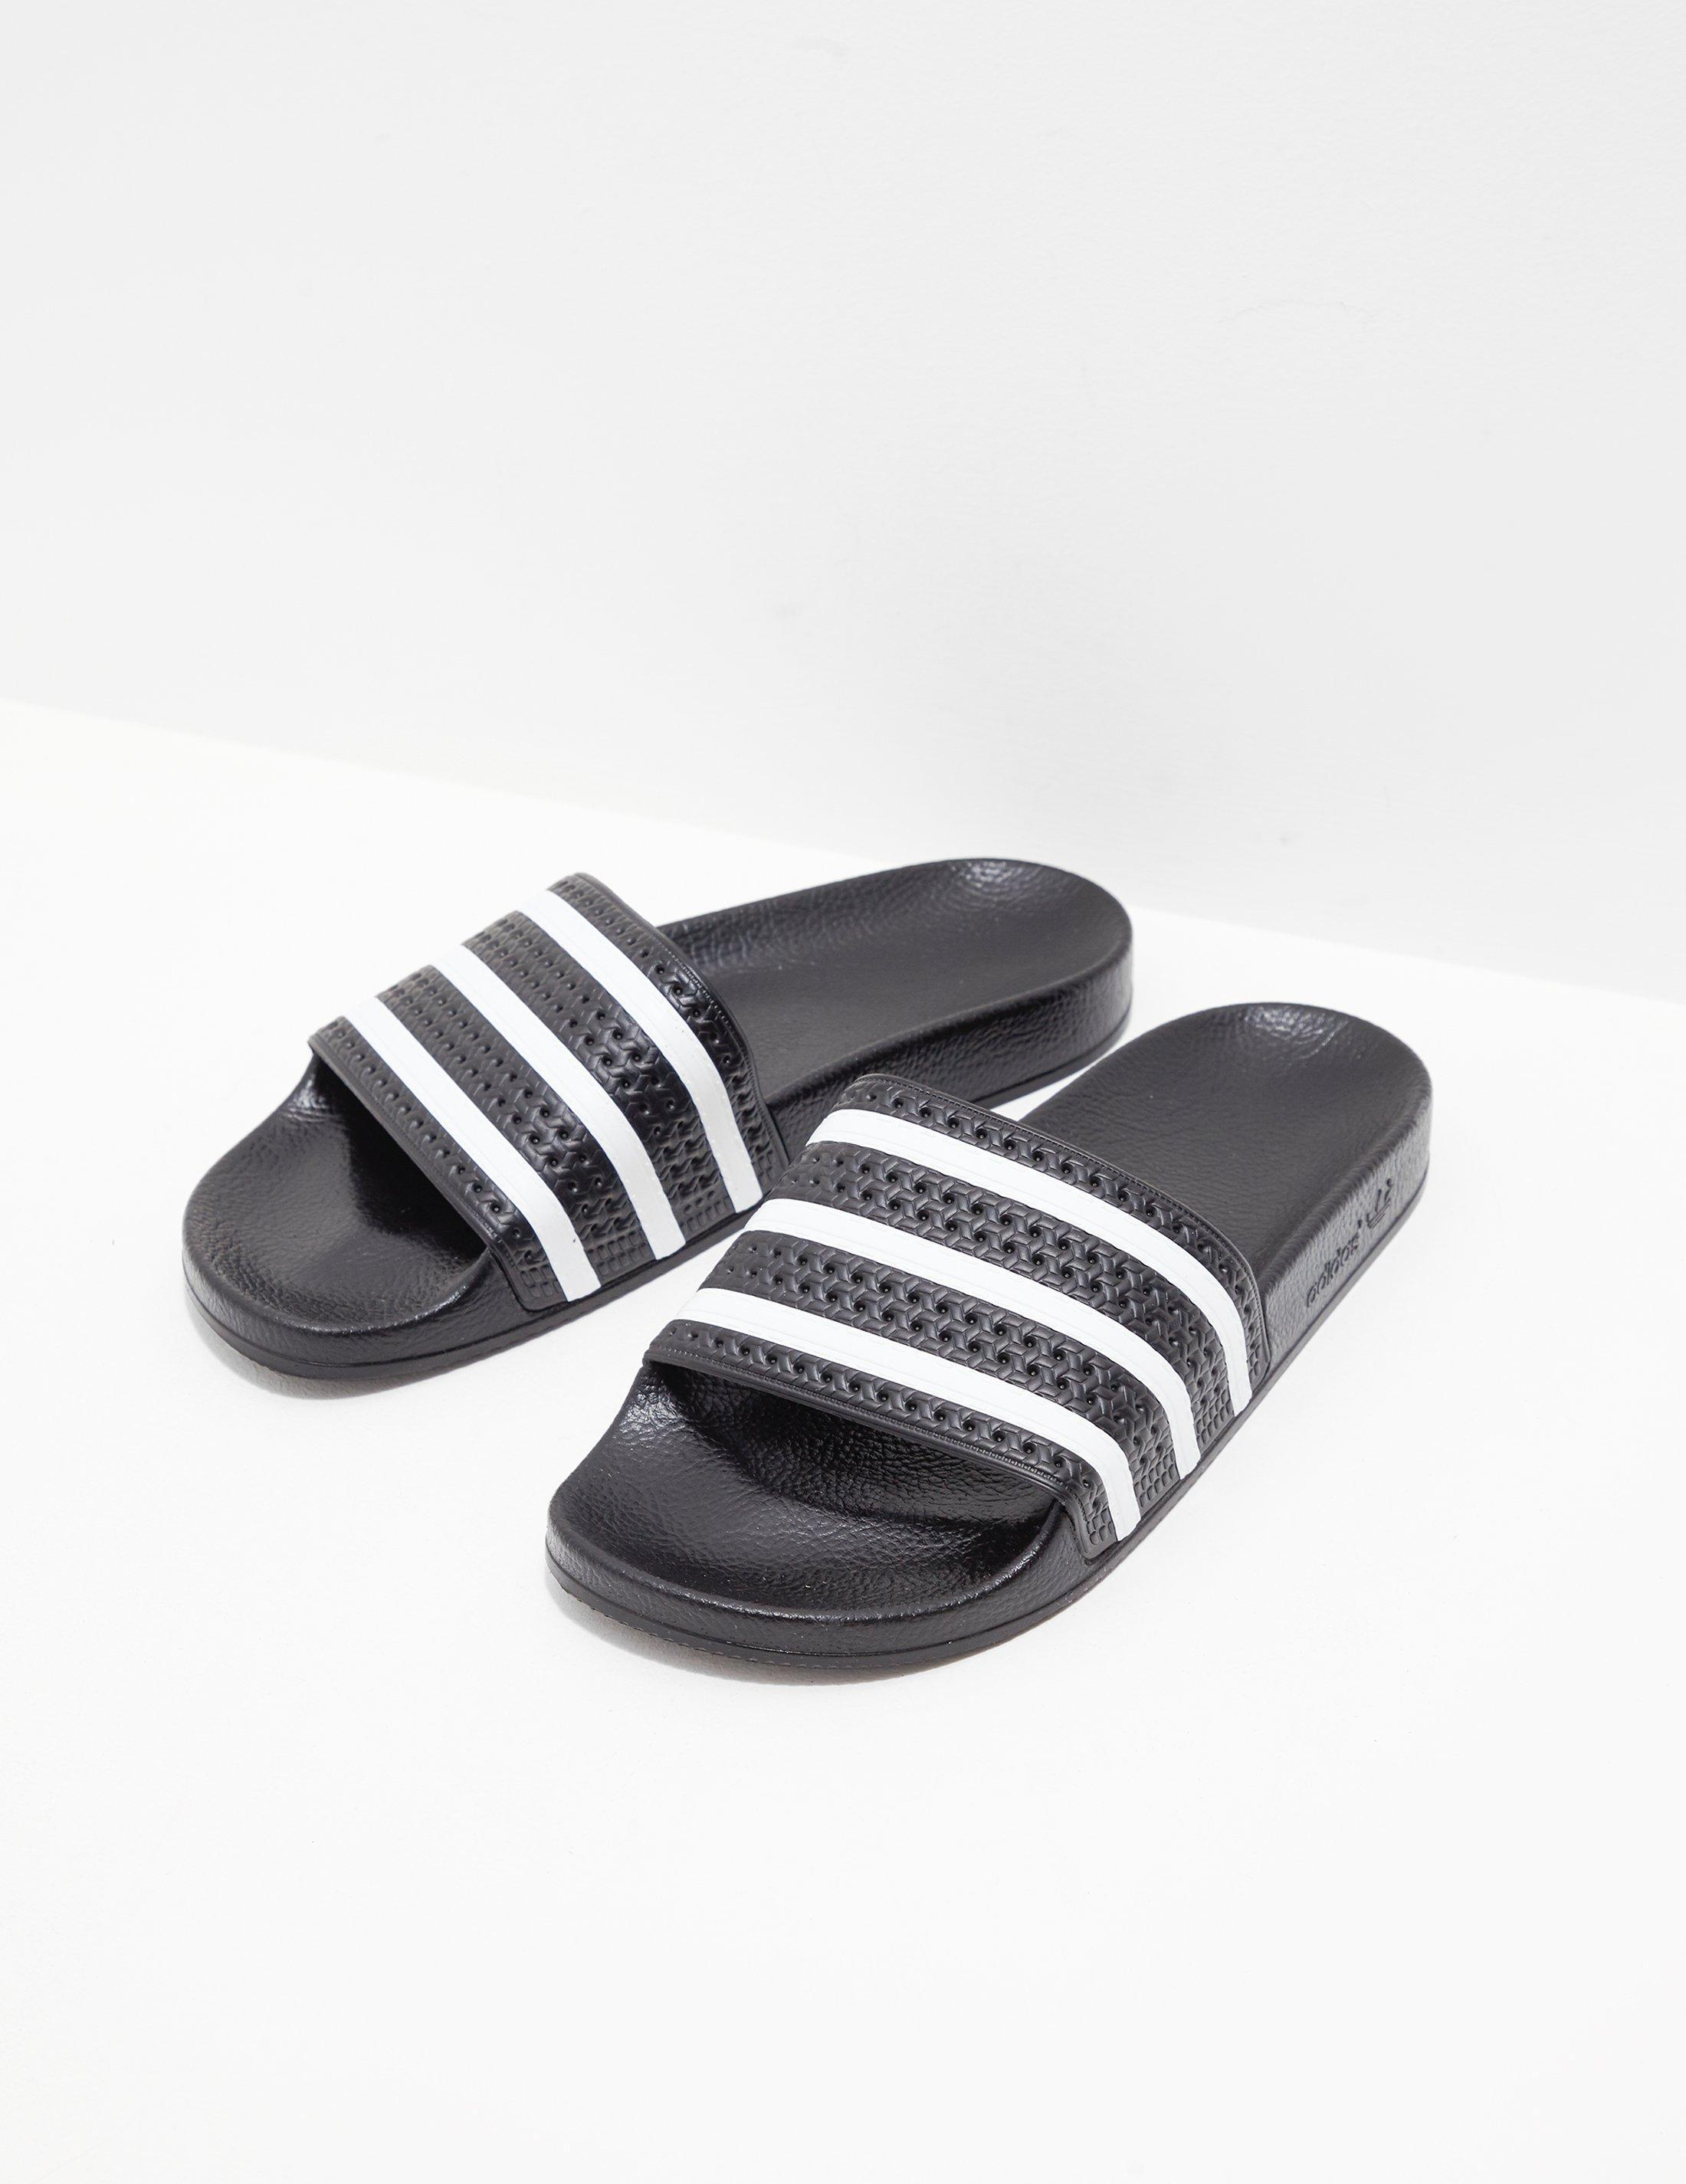 d5b949d5f adidas Originals Adilette Slides Black in Black for Men - Lyst